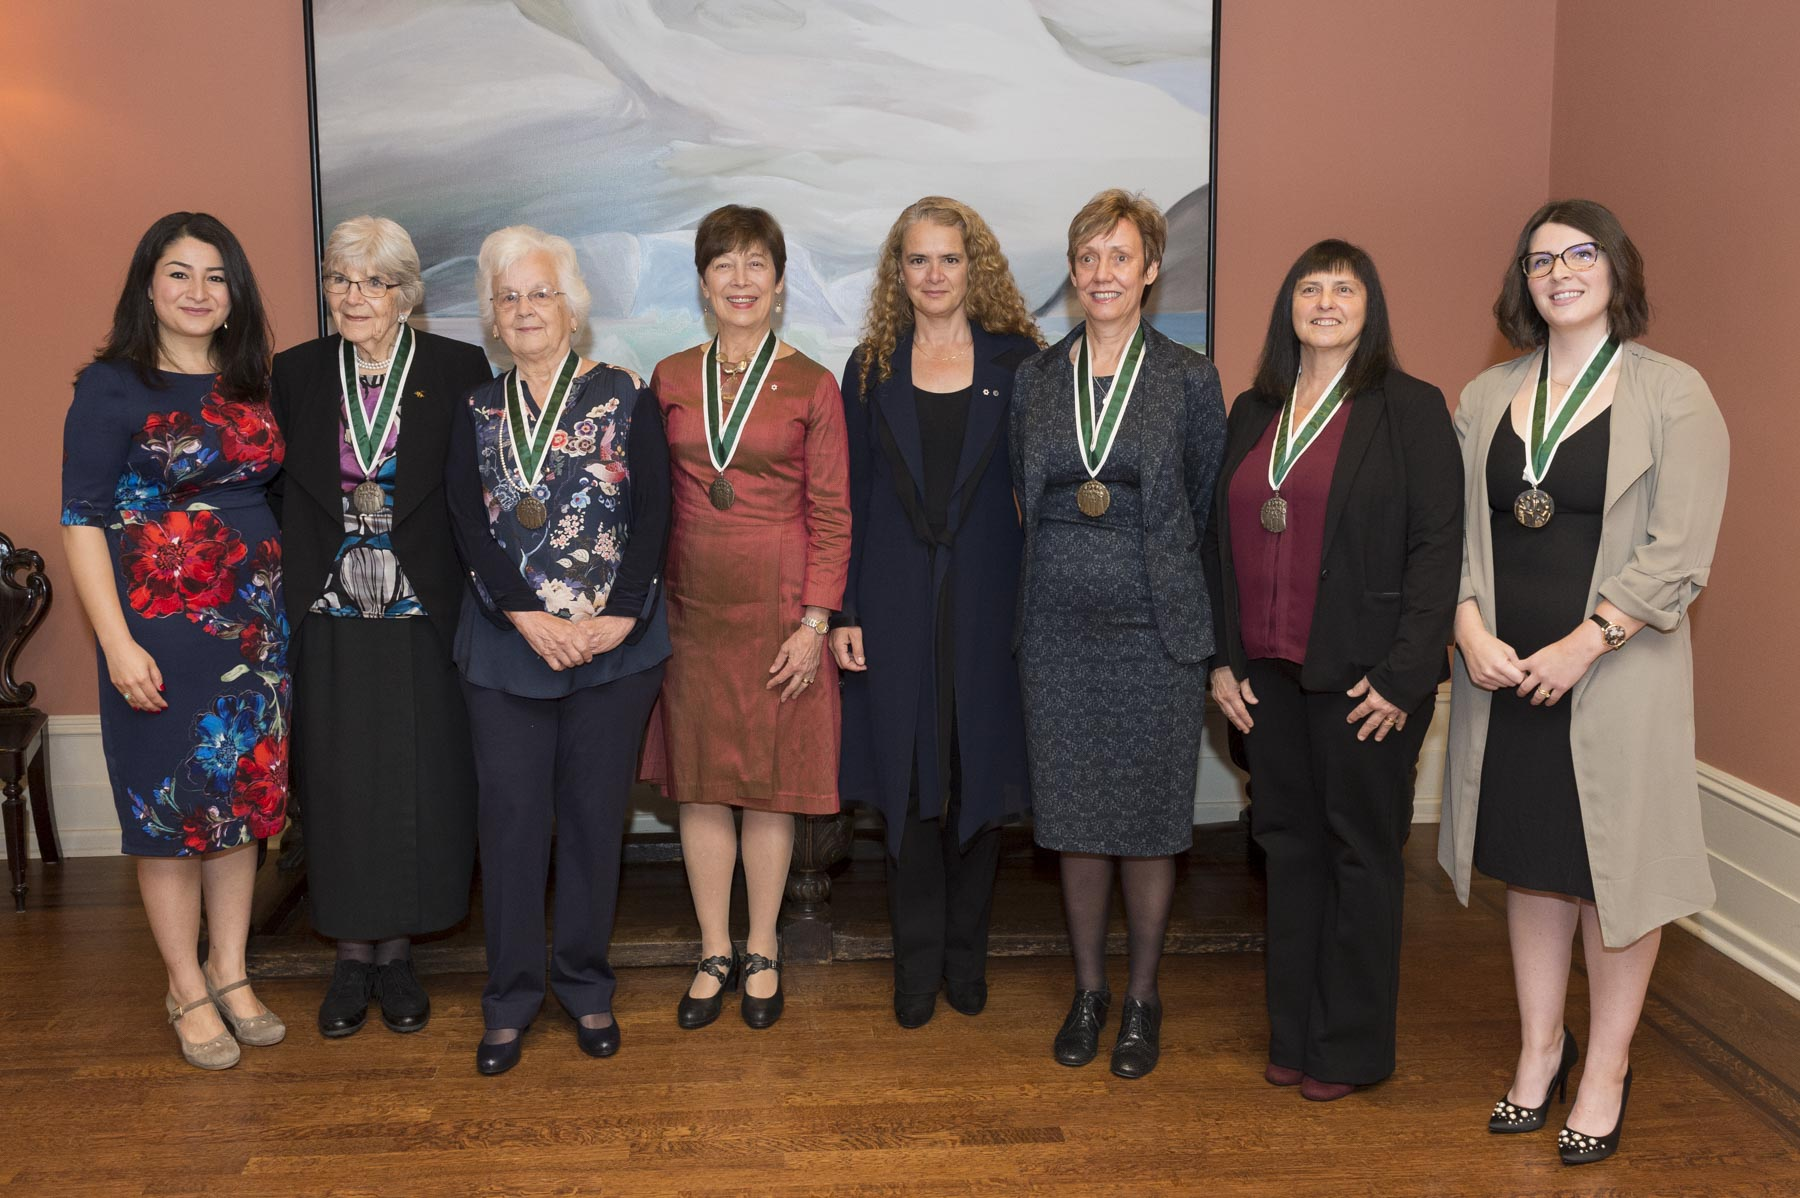 The Governor General's Awards in Commemoration of the Persons Case highlight Canadian contributions to the advancement of women's equality and celebrate Canada's evolution as an inclusive society.